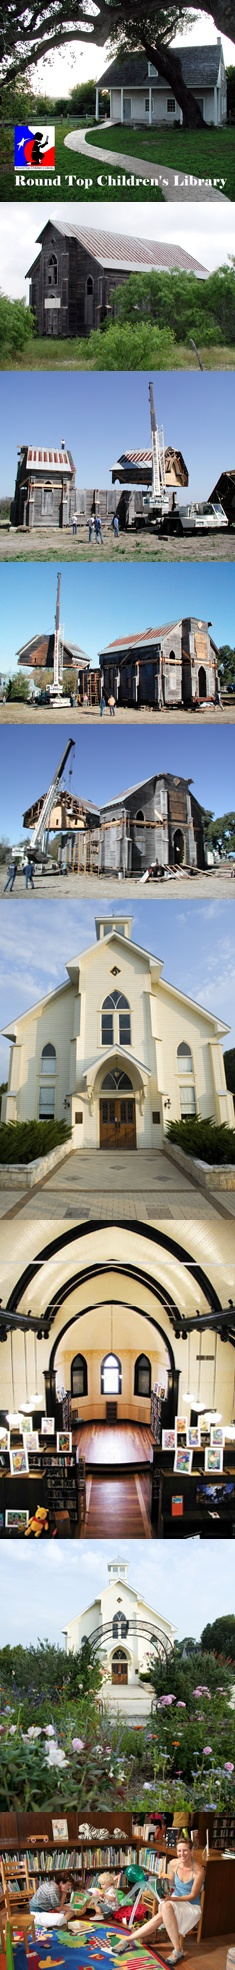 Round Top Family Library. Began as a tiny library for children in a town of 81 people, and grew in to a library for families. 1920's church was taken apart in seven pieces and moved across three counties in Texas. A miracle that came true.